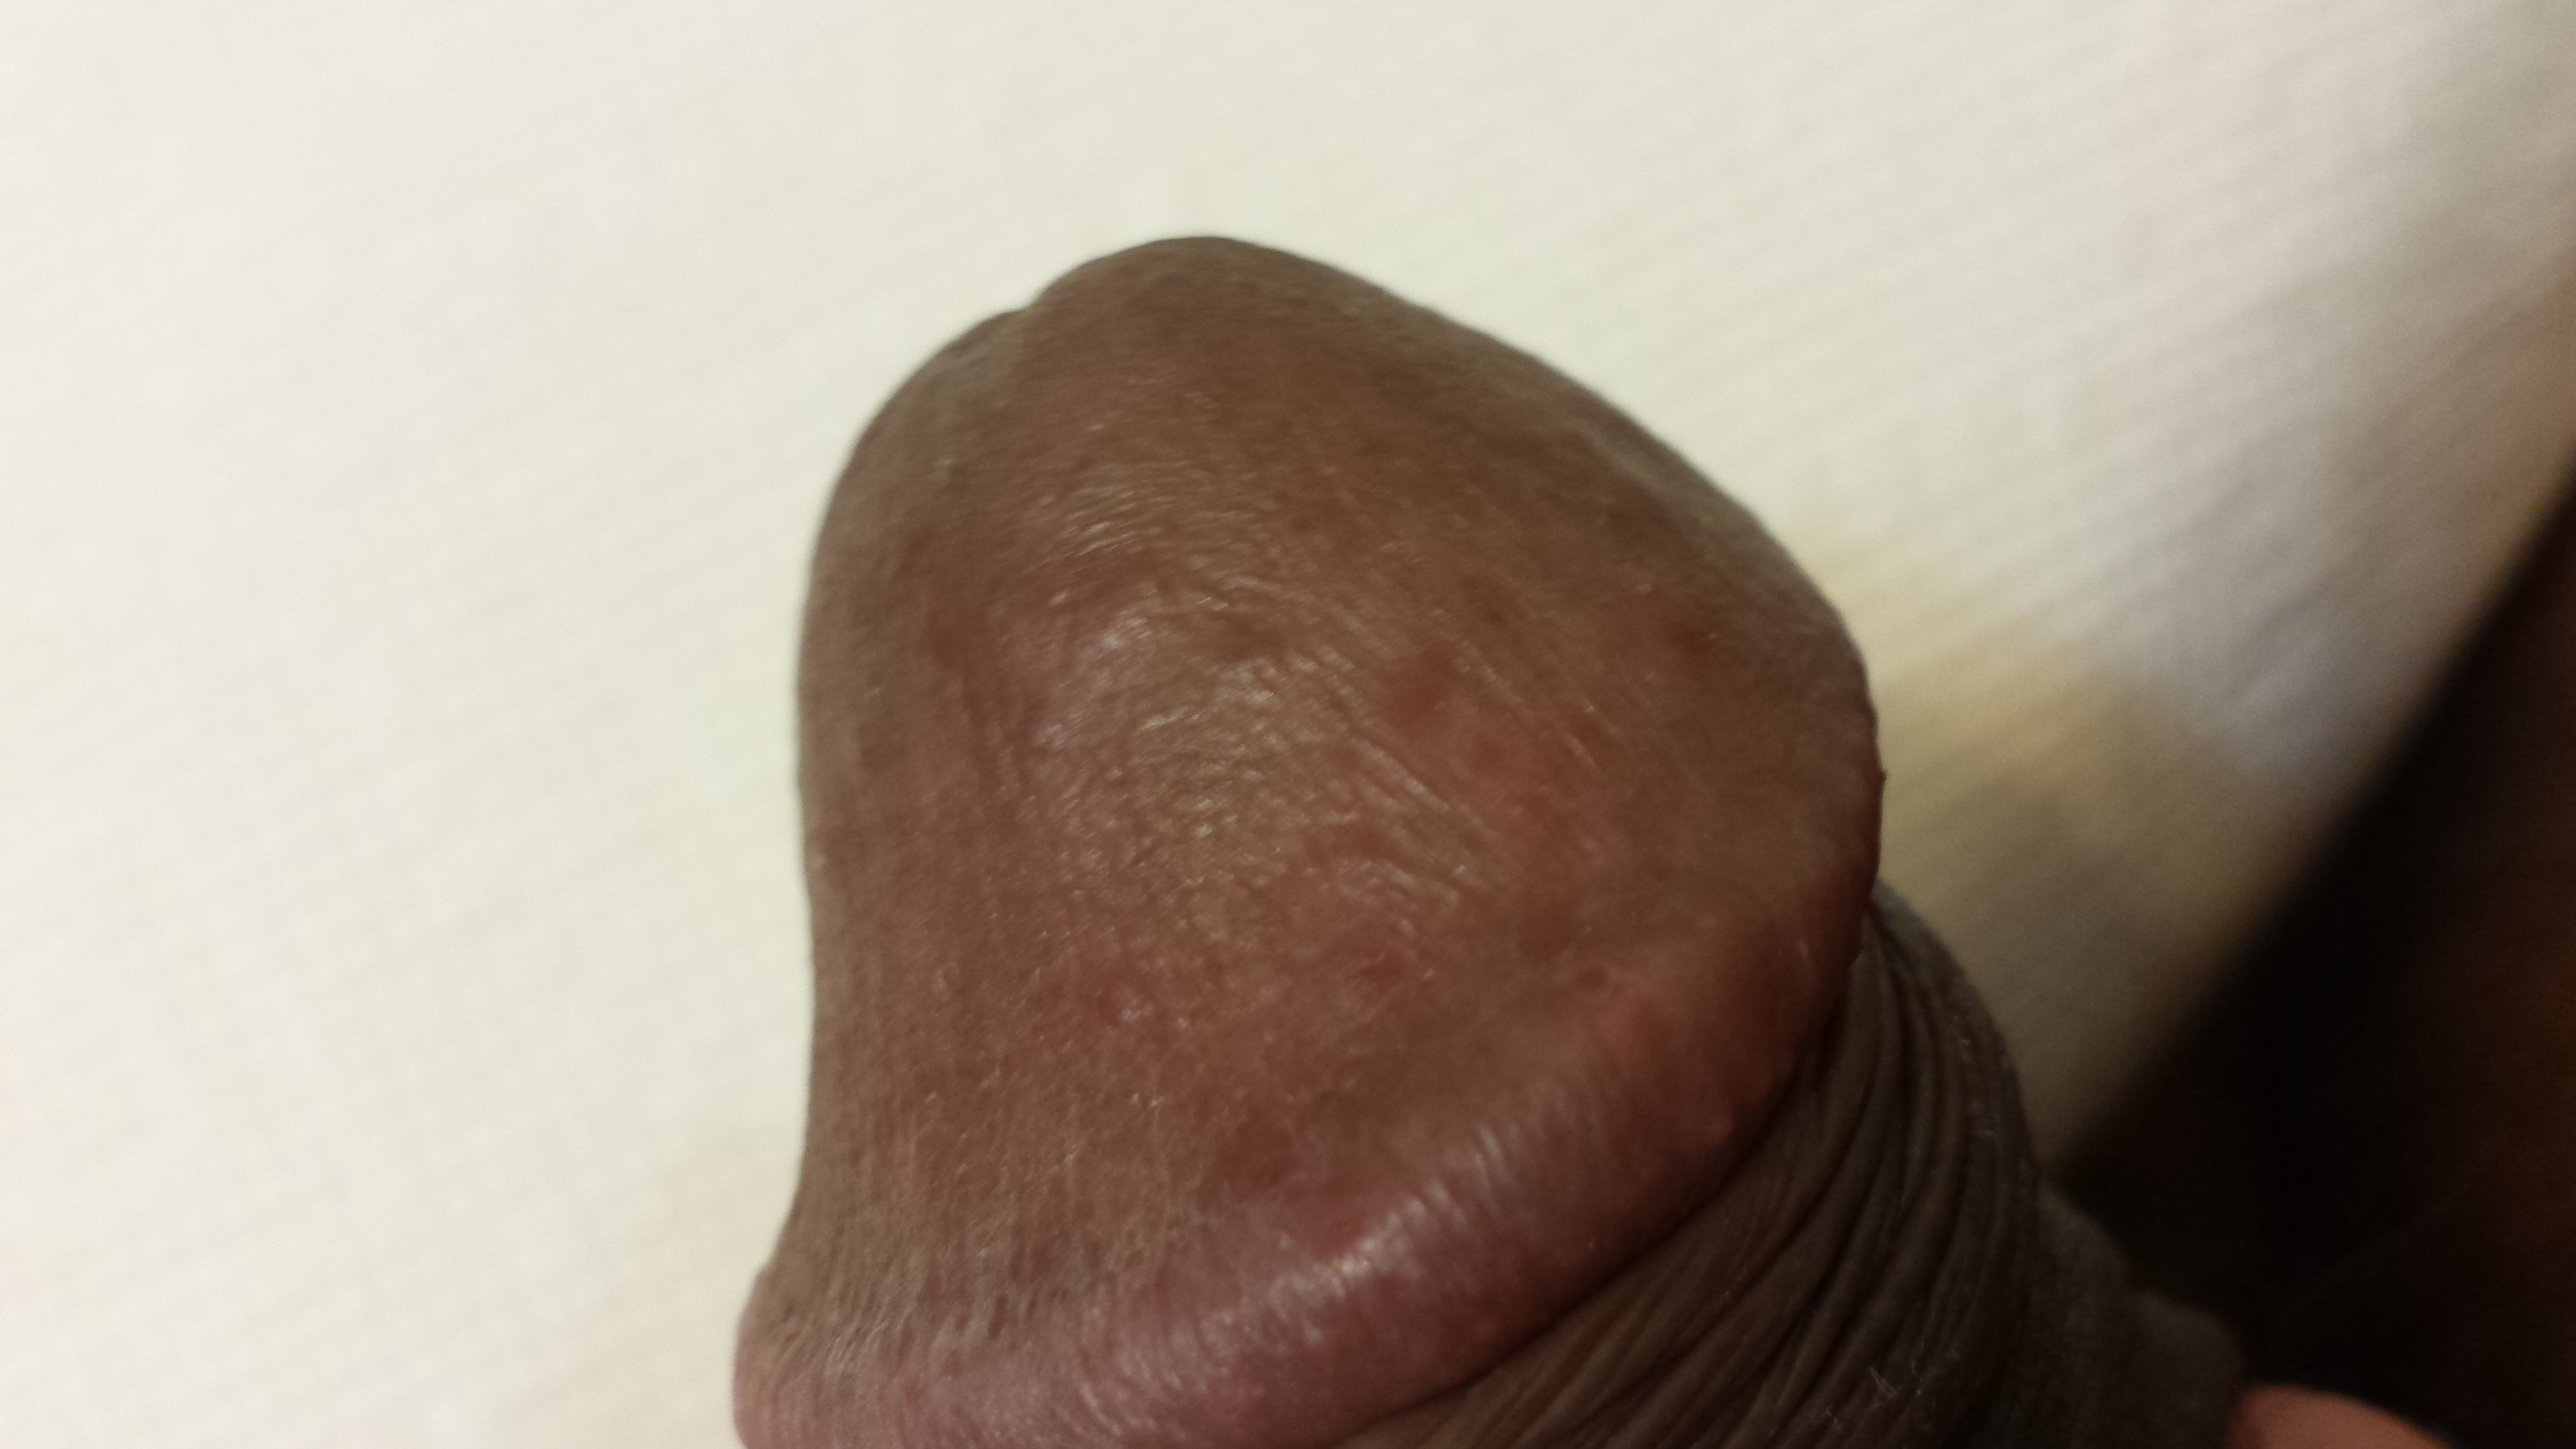 red dots on head of penis